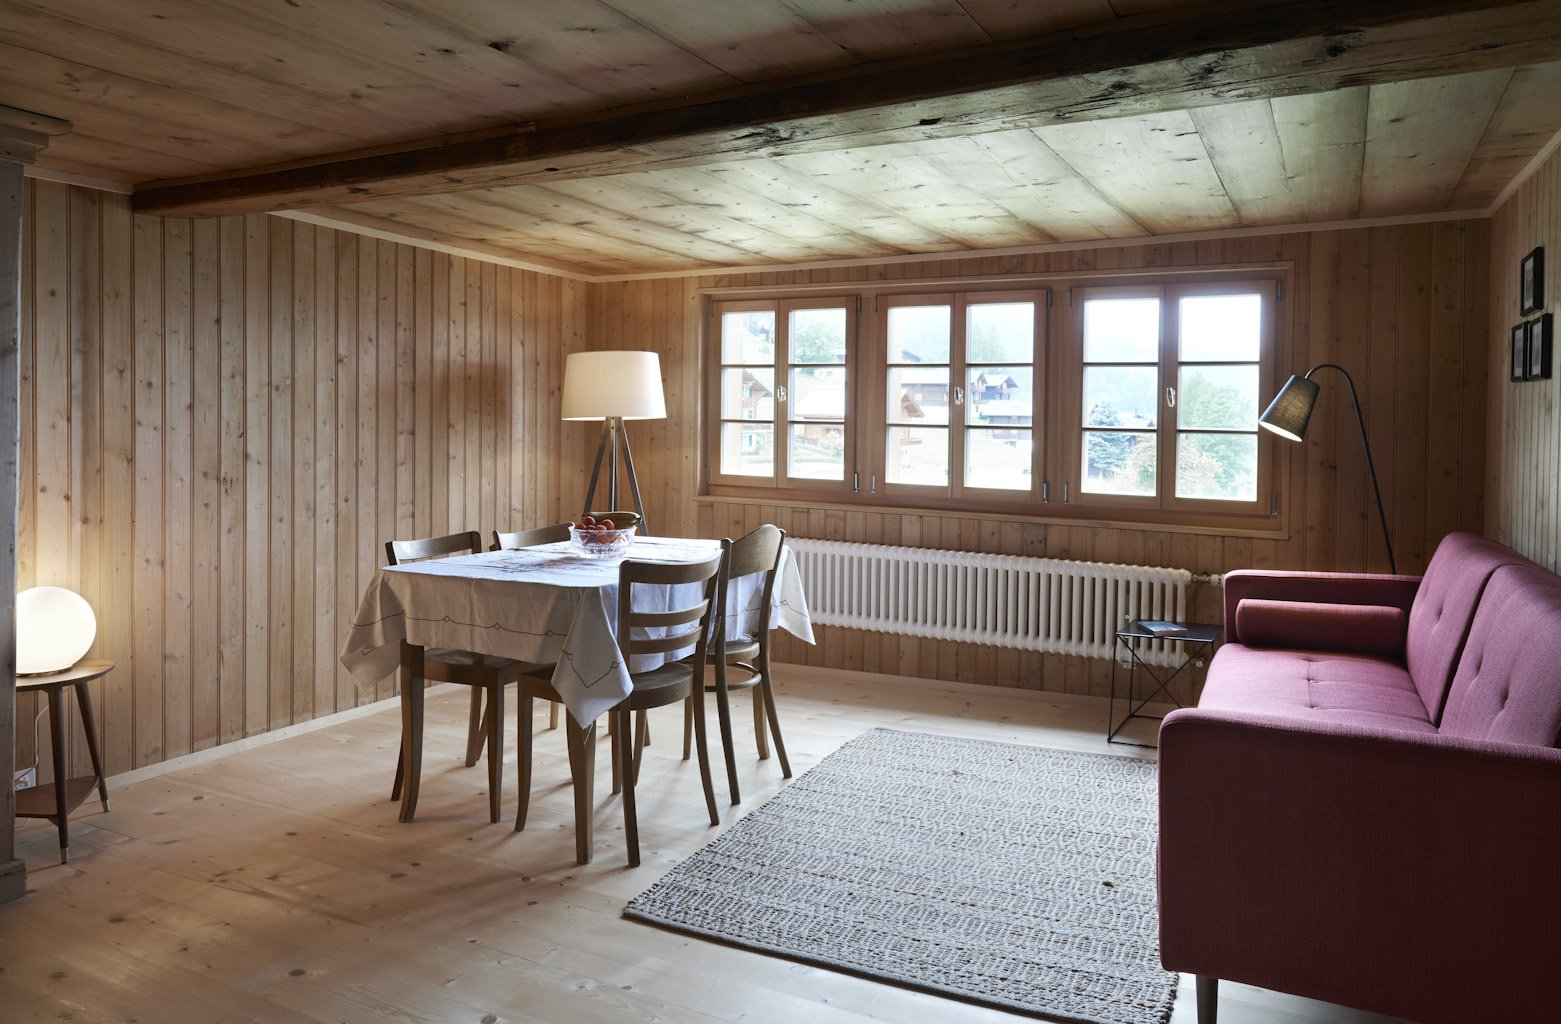 Living Room, Sofa, Floor Lighting, Chair, Table, and Light Hardwood Floor  Photo 6 of 13 in A Renovated Pagan House in the Swiss Alps Puts Guests in Touch With the Past